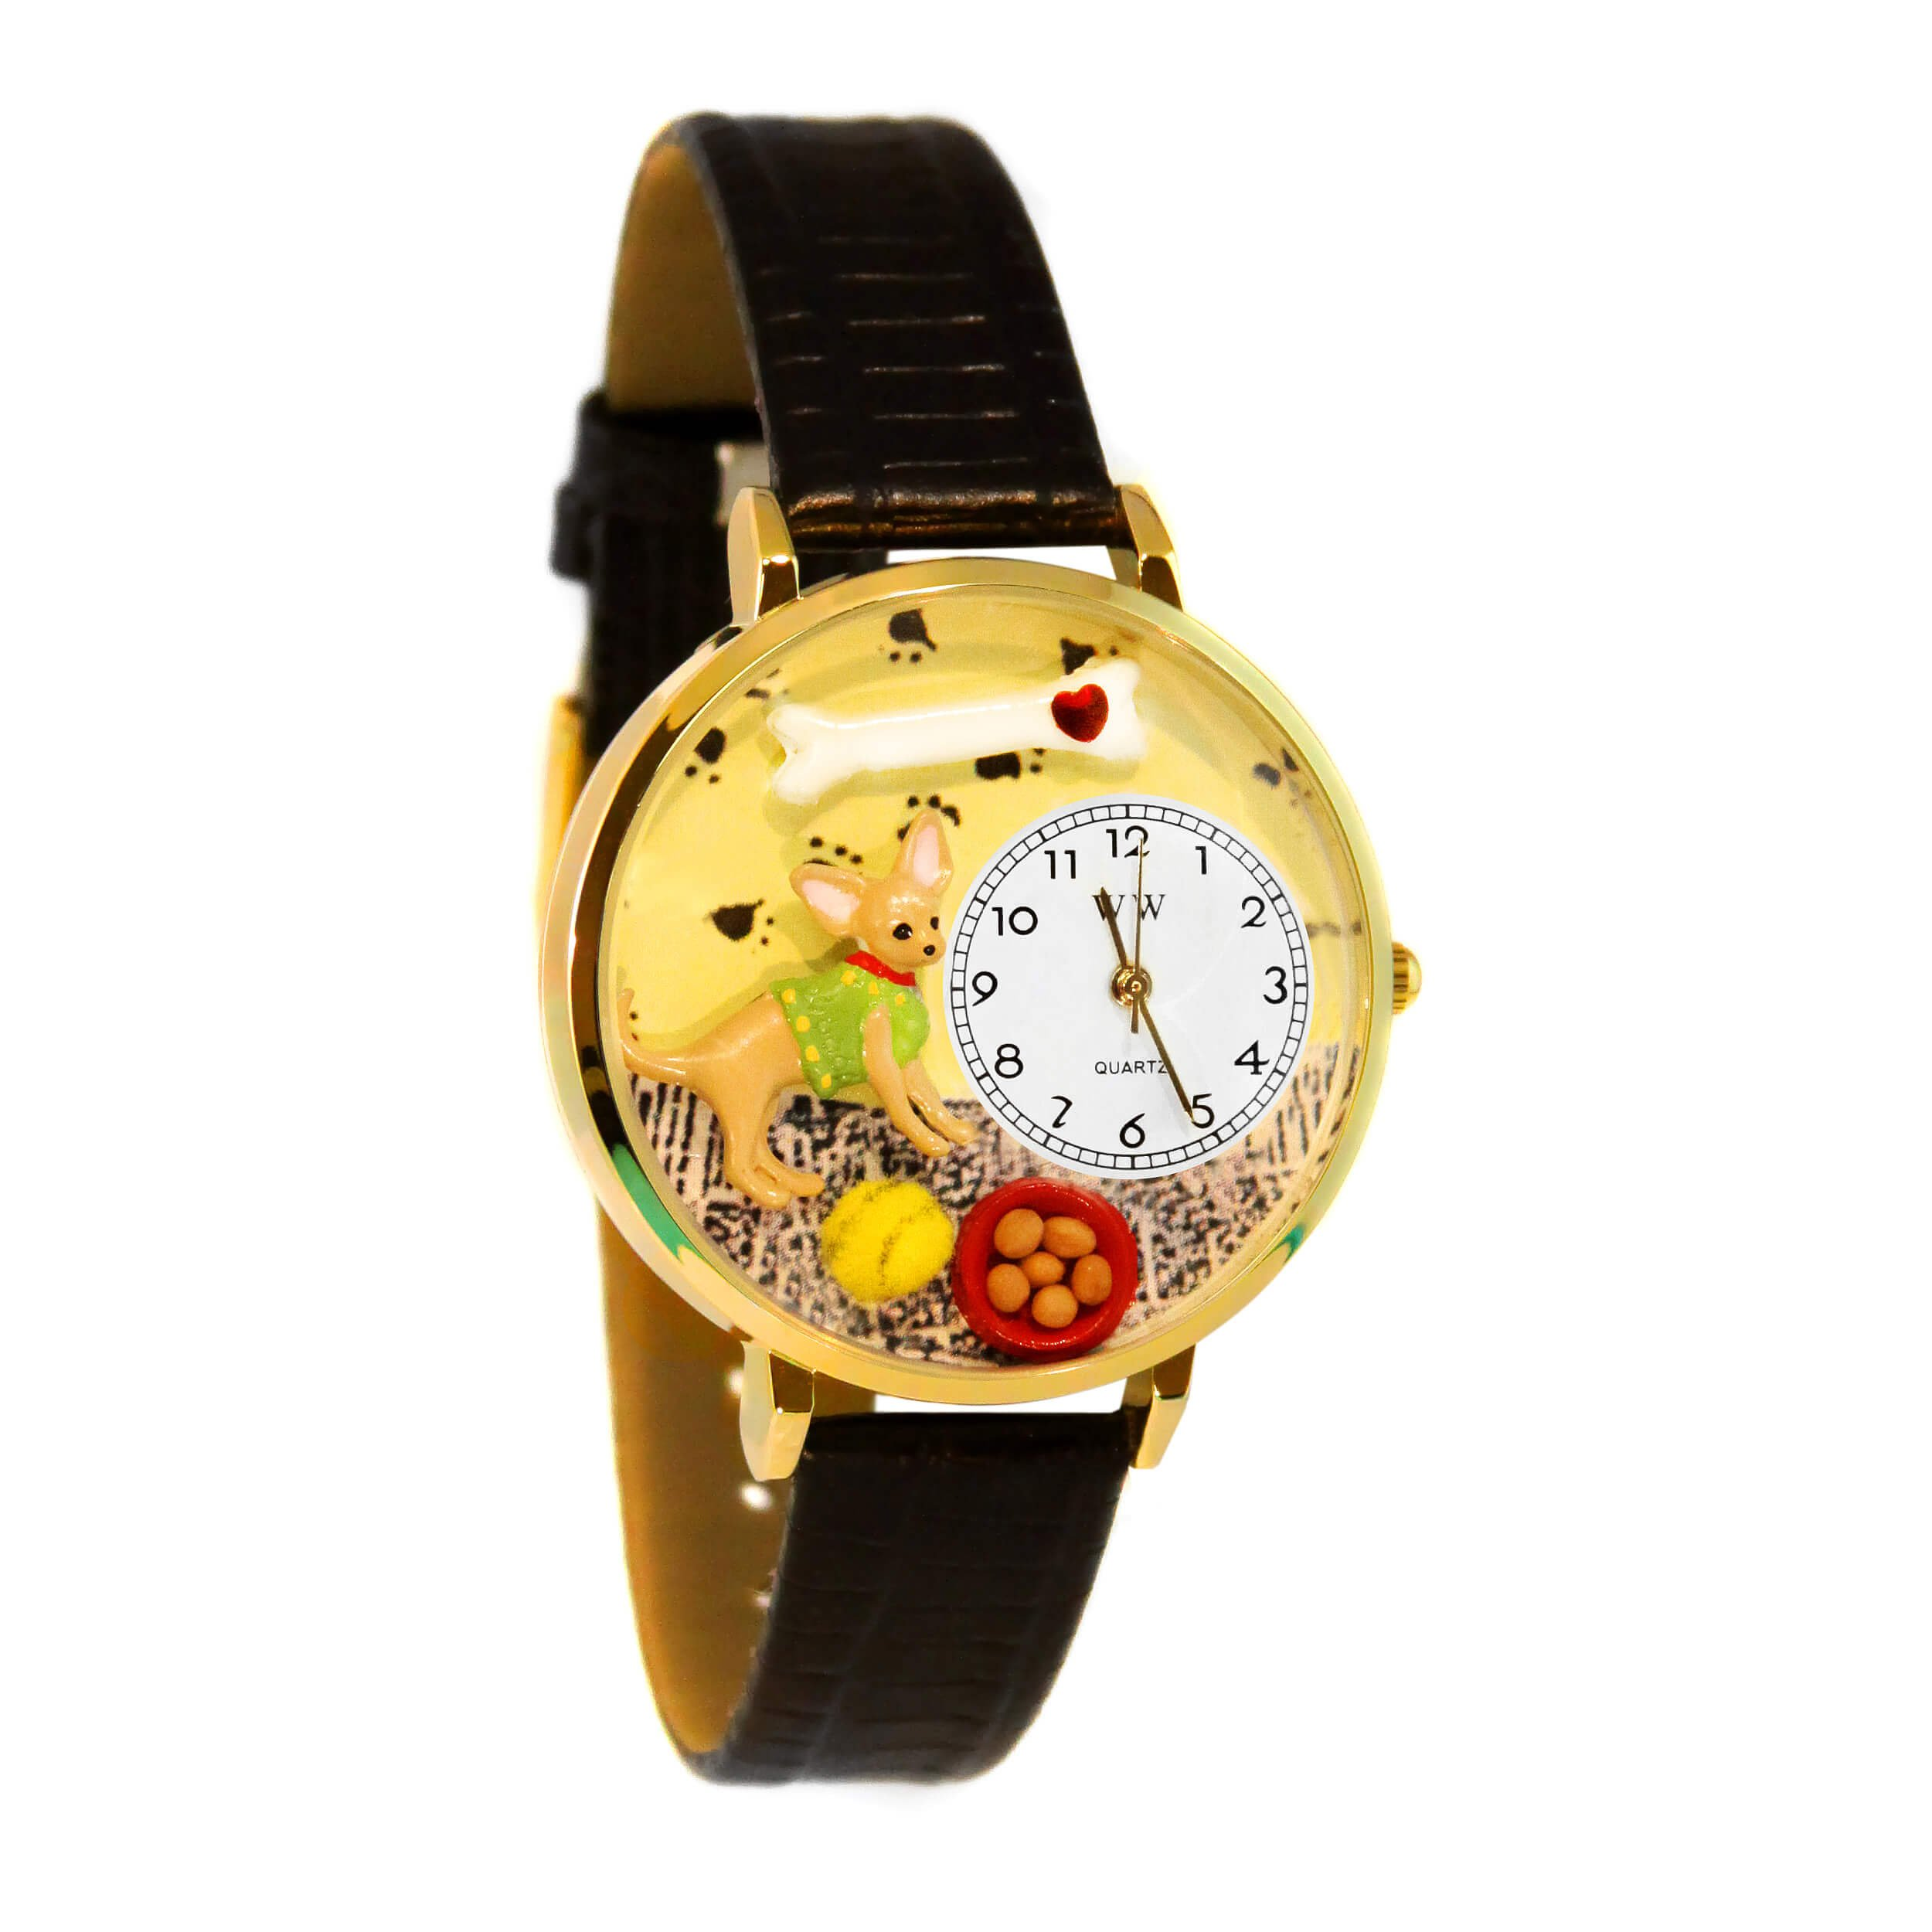 Whimsical Watches Unisex G0130023 Chihuahua Black Skin Leather Watch